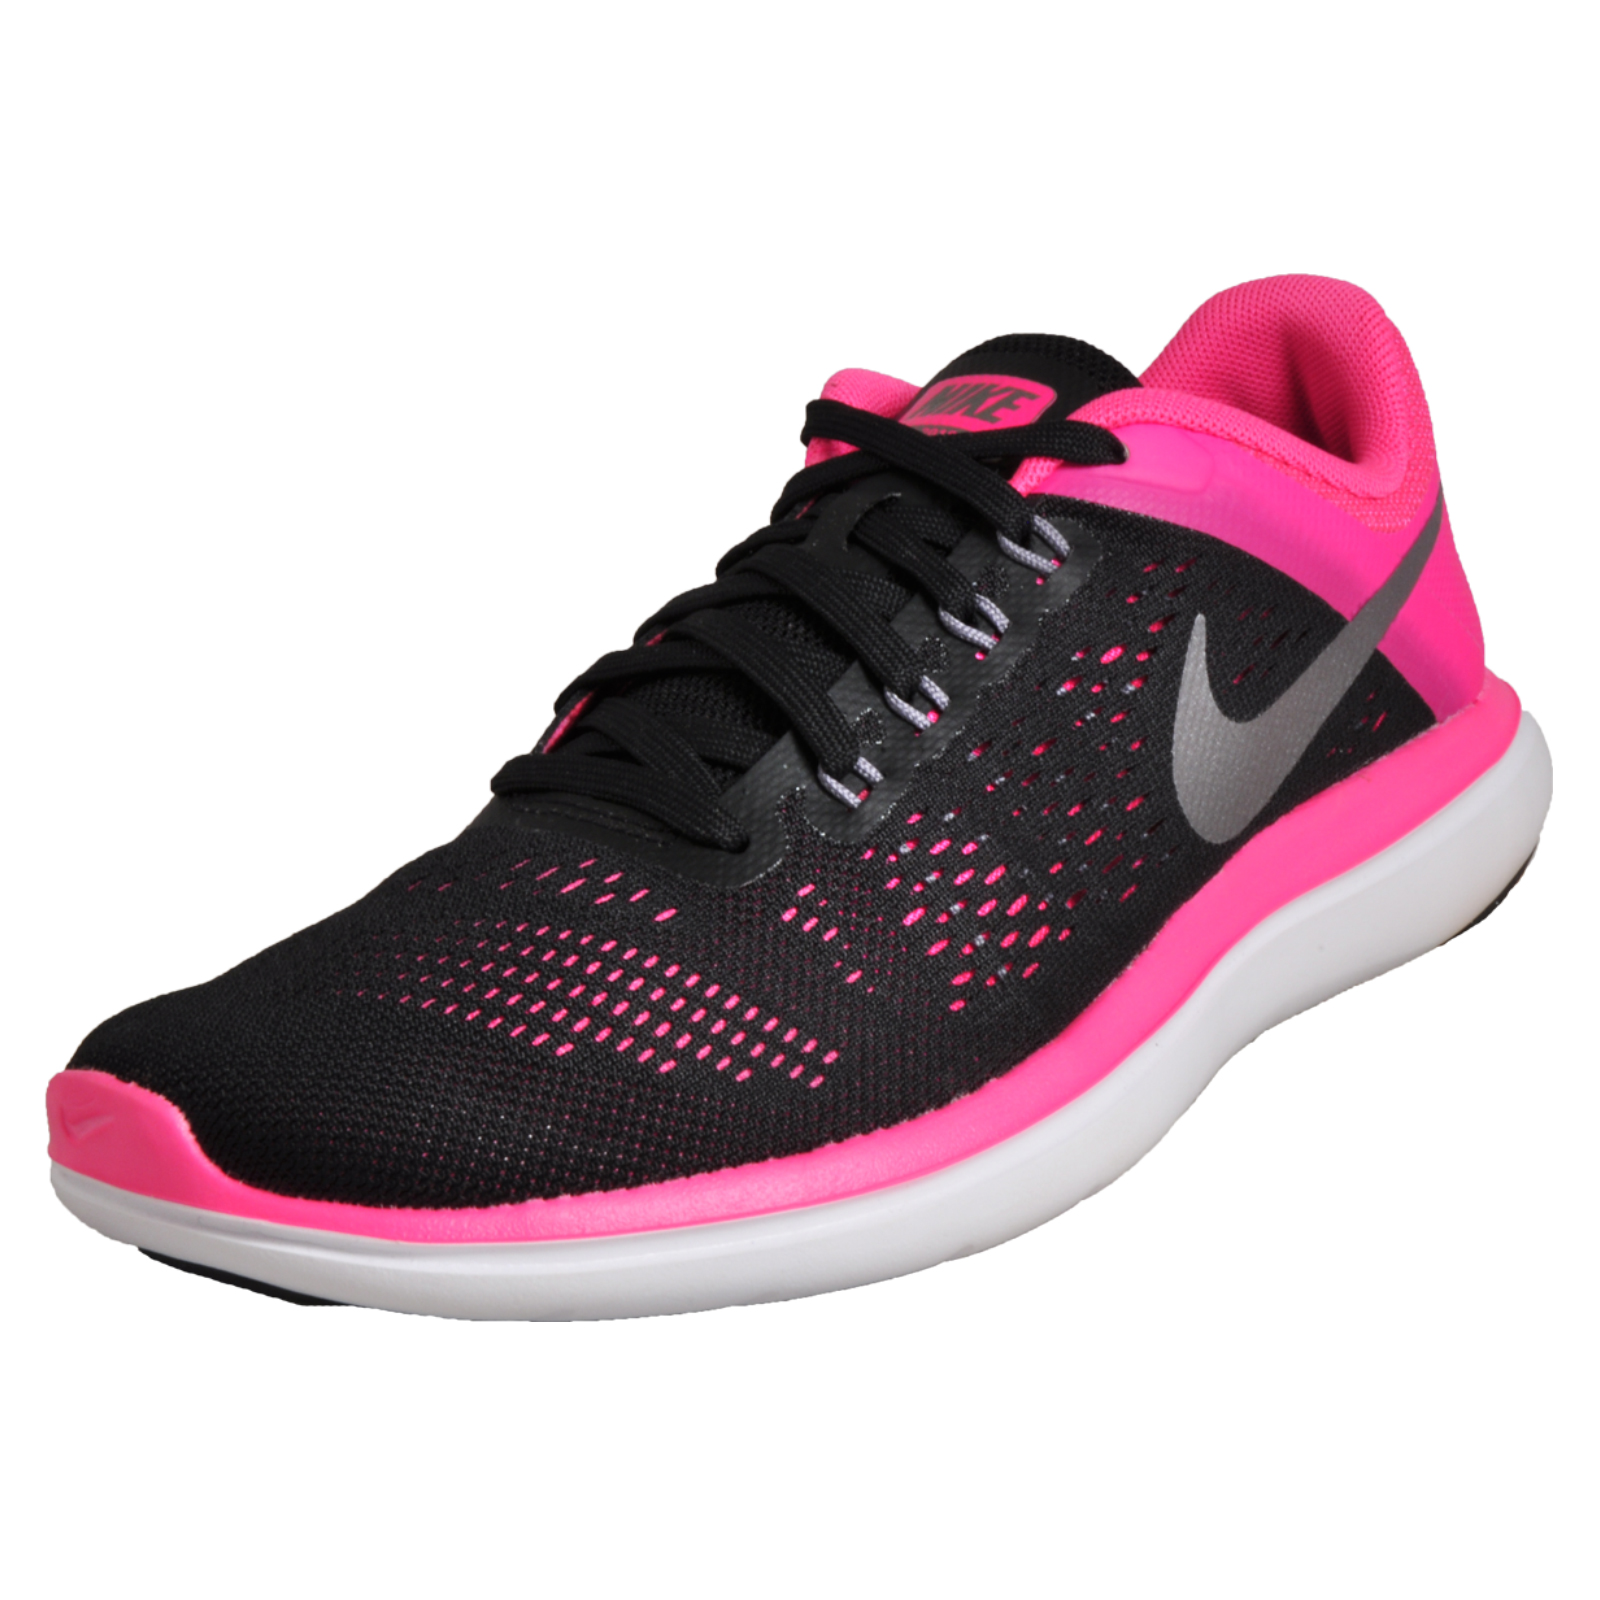 d8827994c574 Details about Nike Flex Women s Running Shoes Fitness Gym Trainers Black  Pink